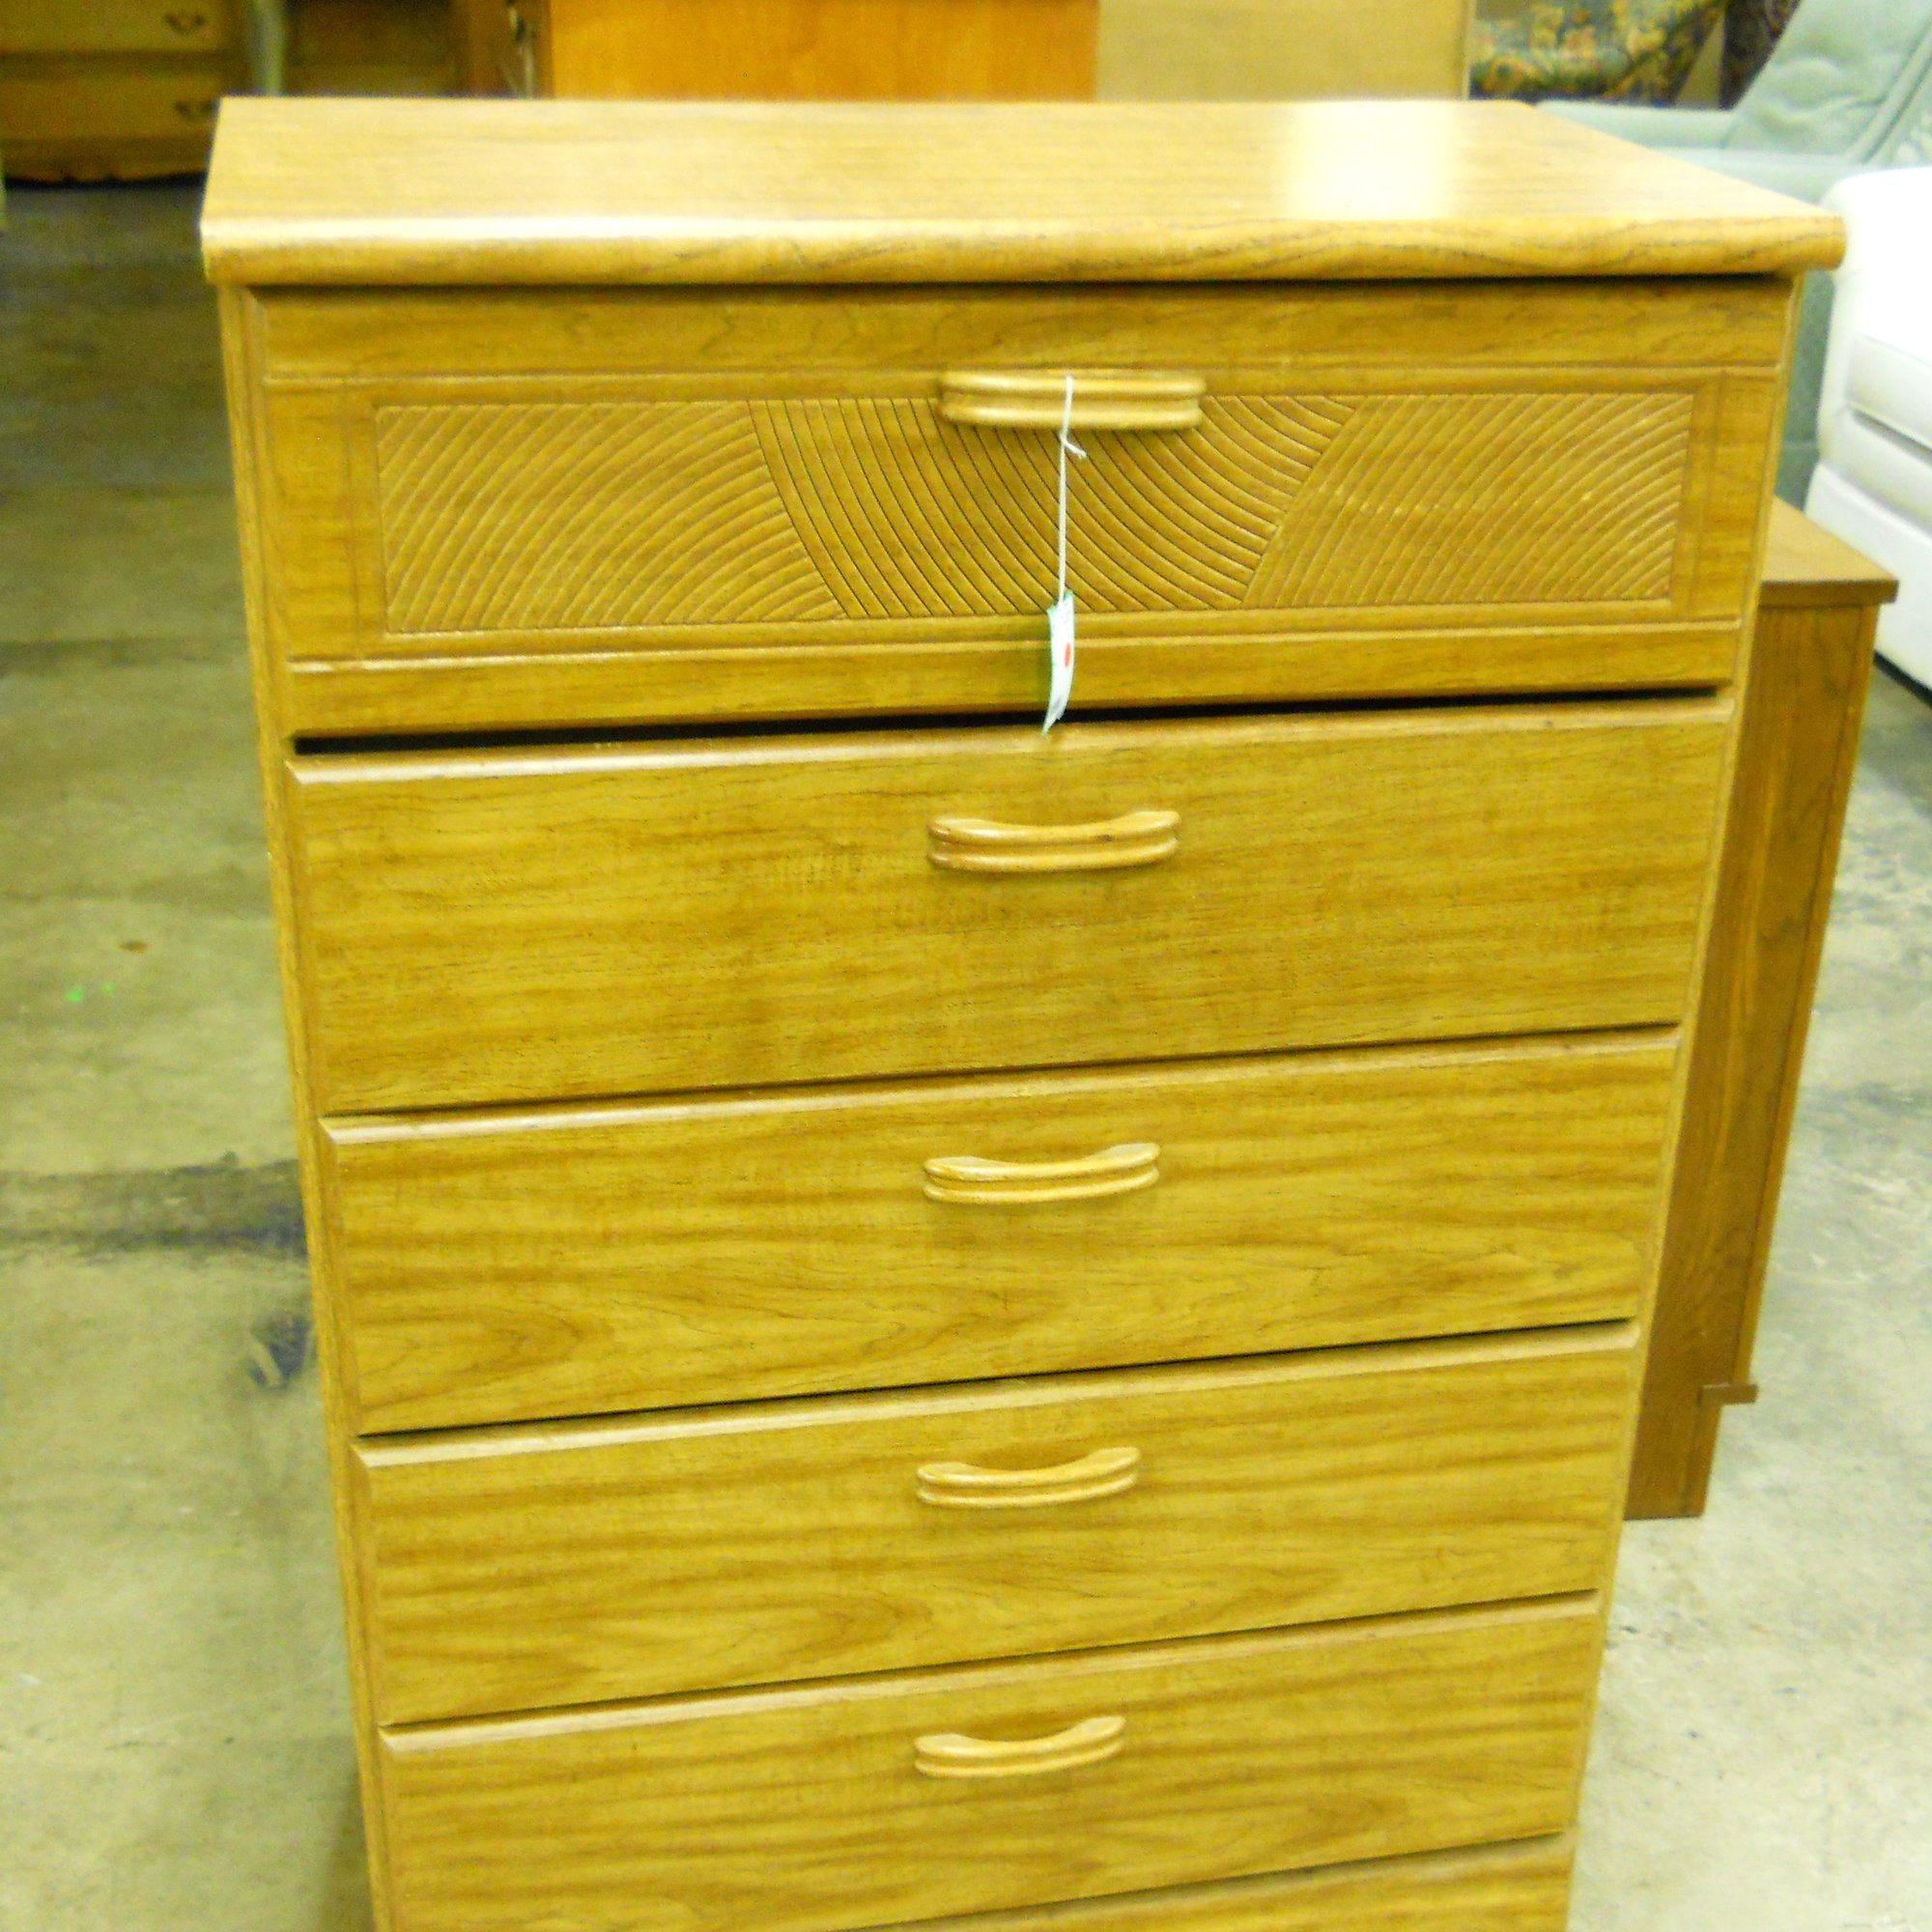 Used Furniture Gallery: 1-12896 Chest